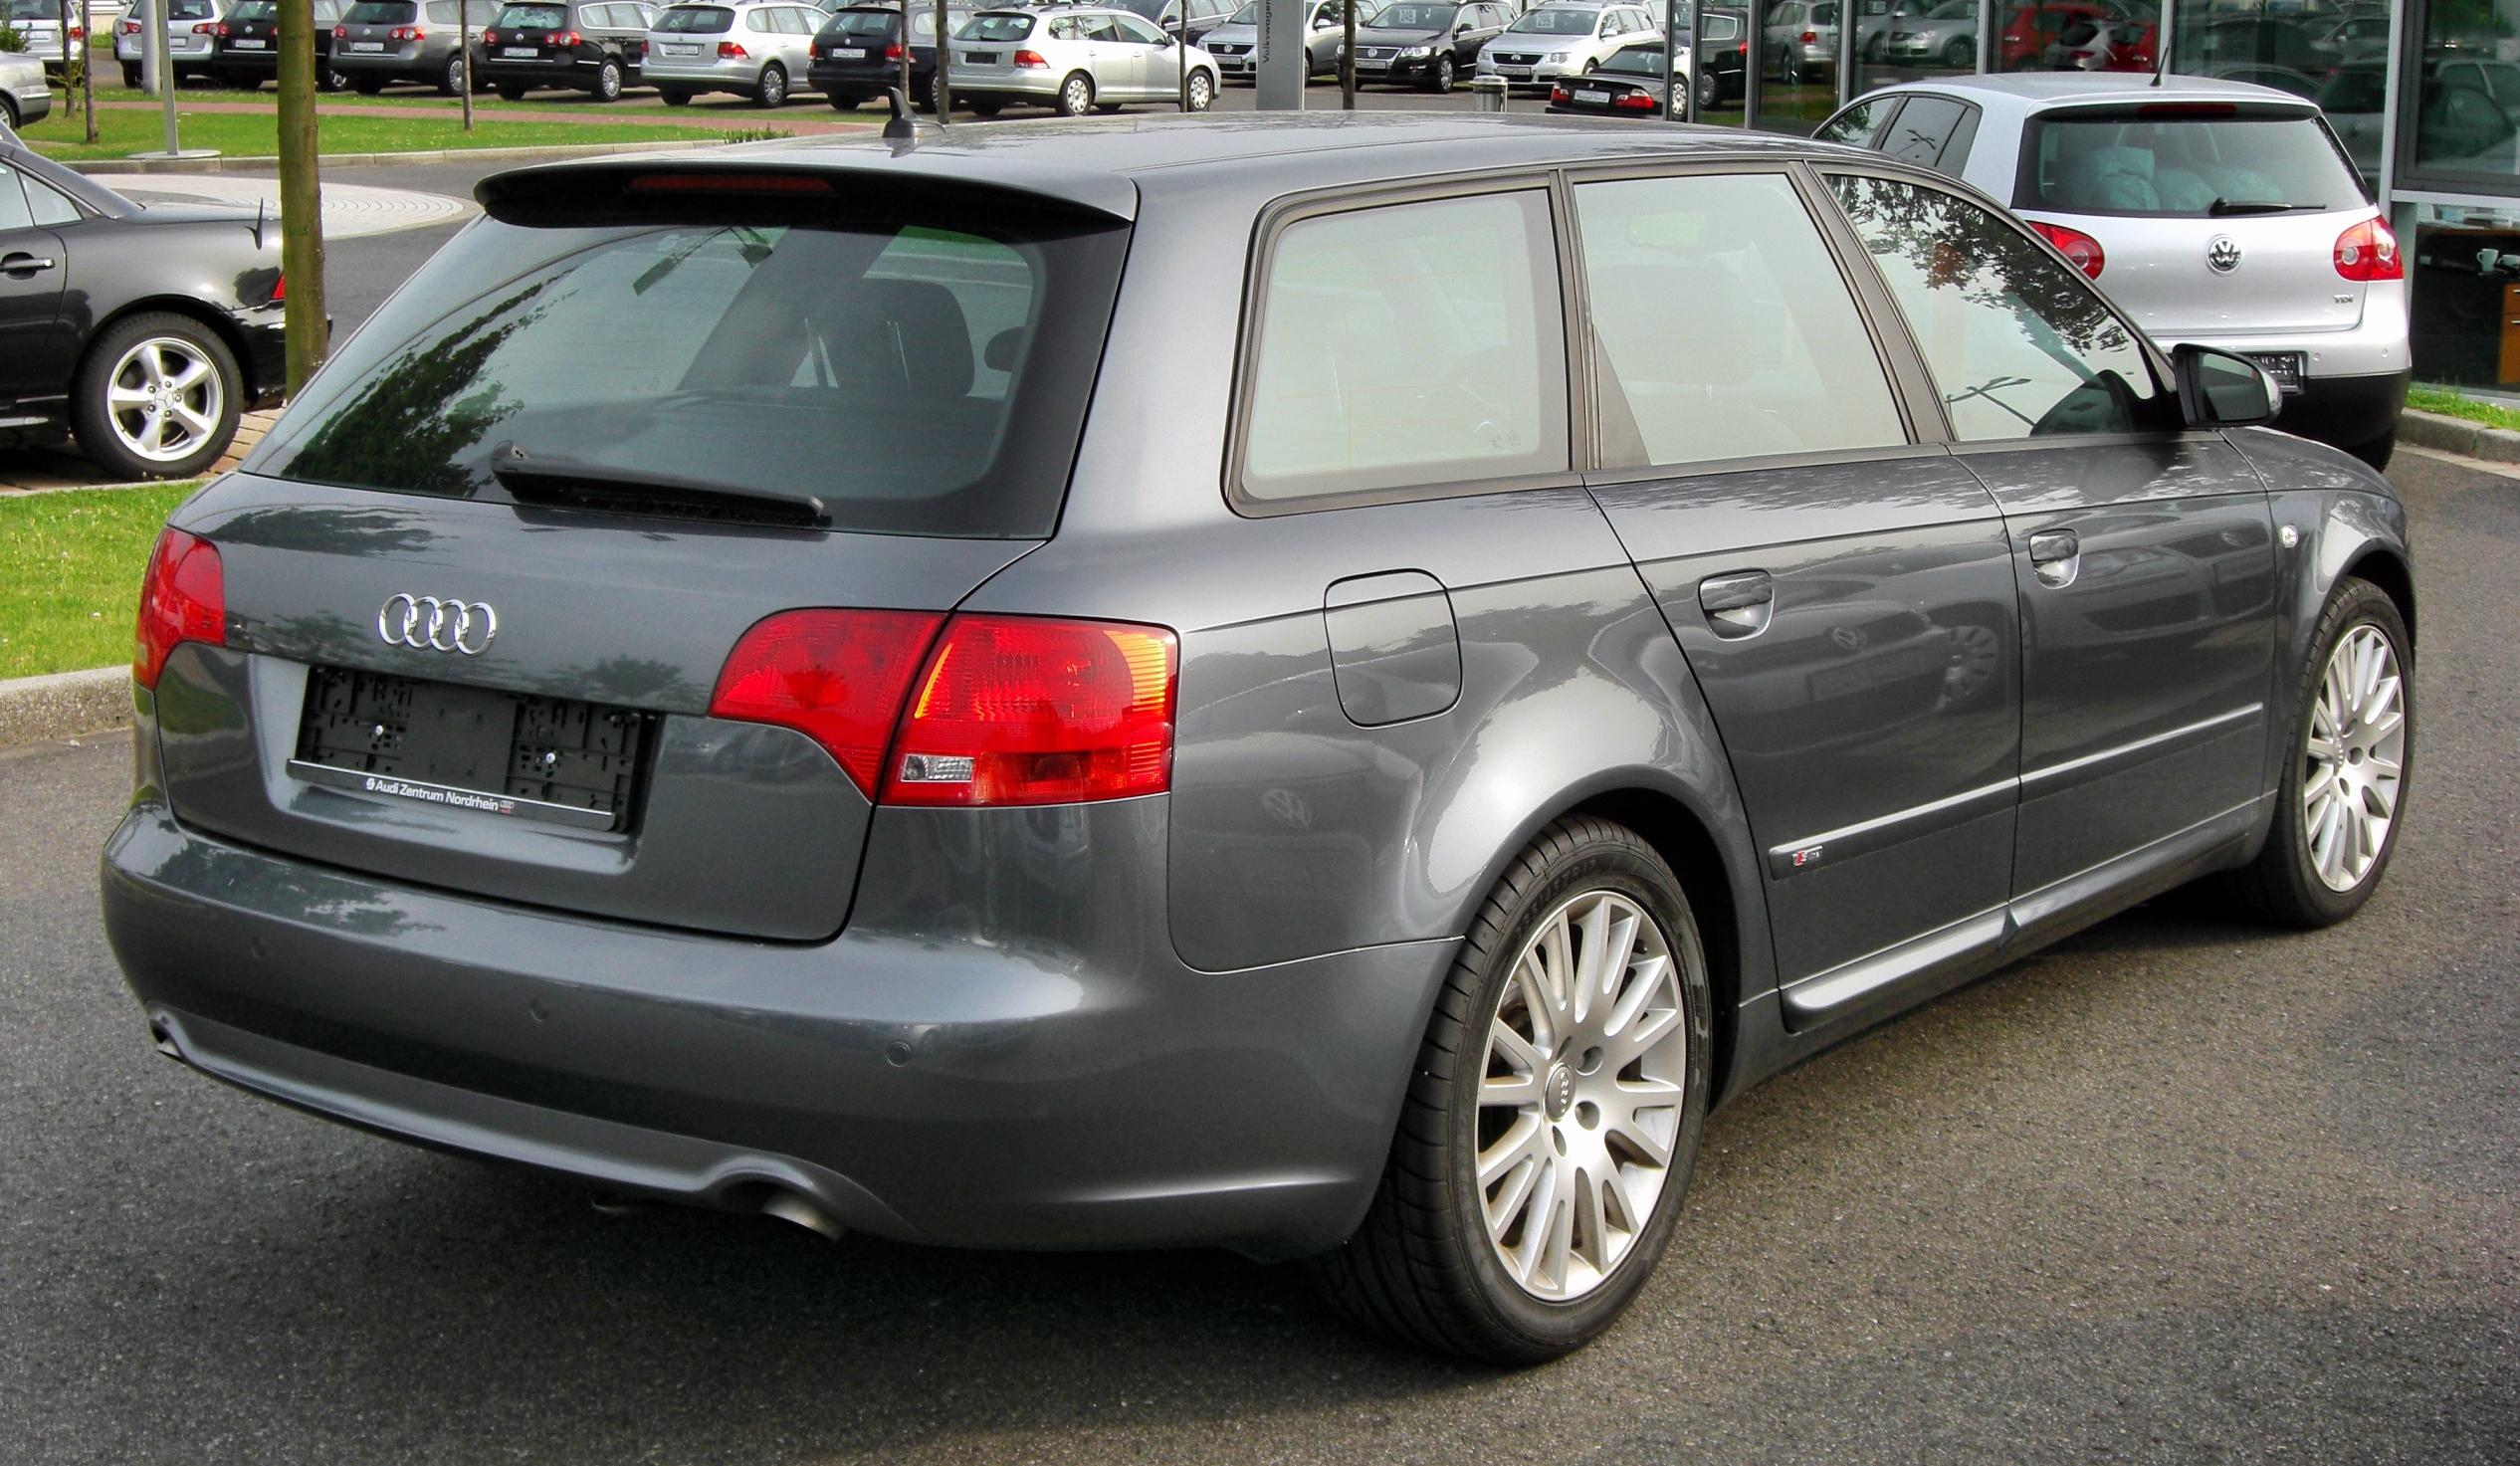 file audi a4 b7 avant s line 20090809 rear jpg wikimedia. Black Bedroom Furniture Sets. Home Design Ideas